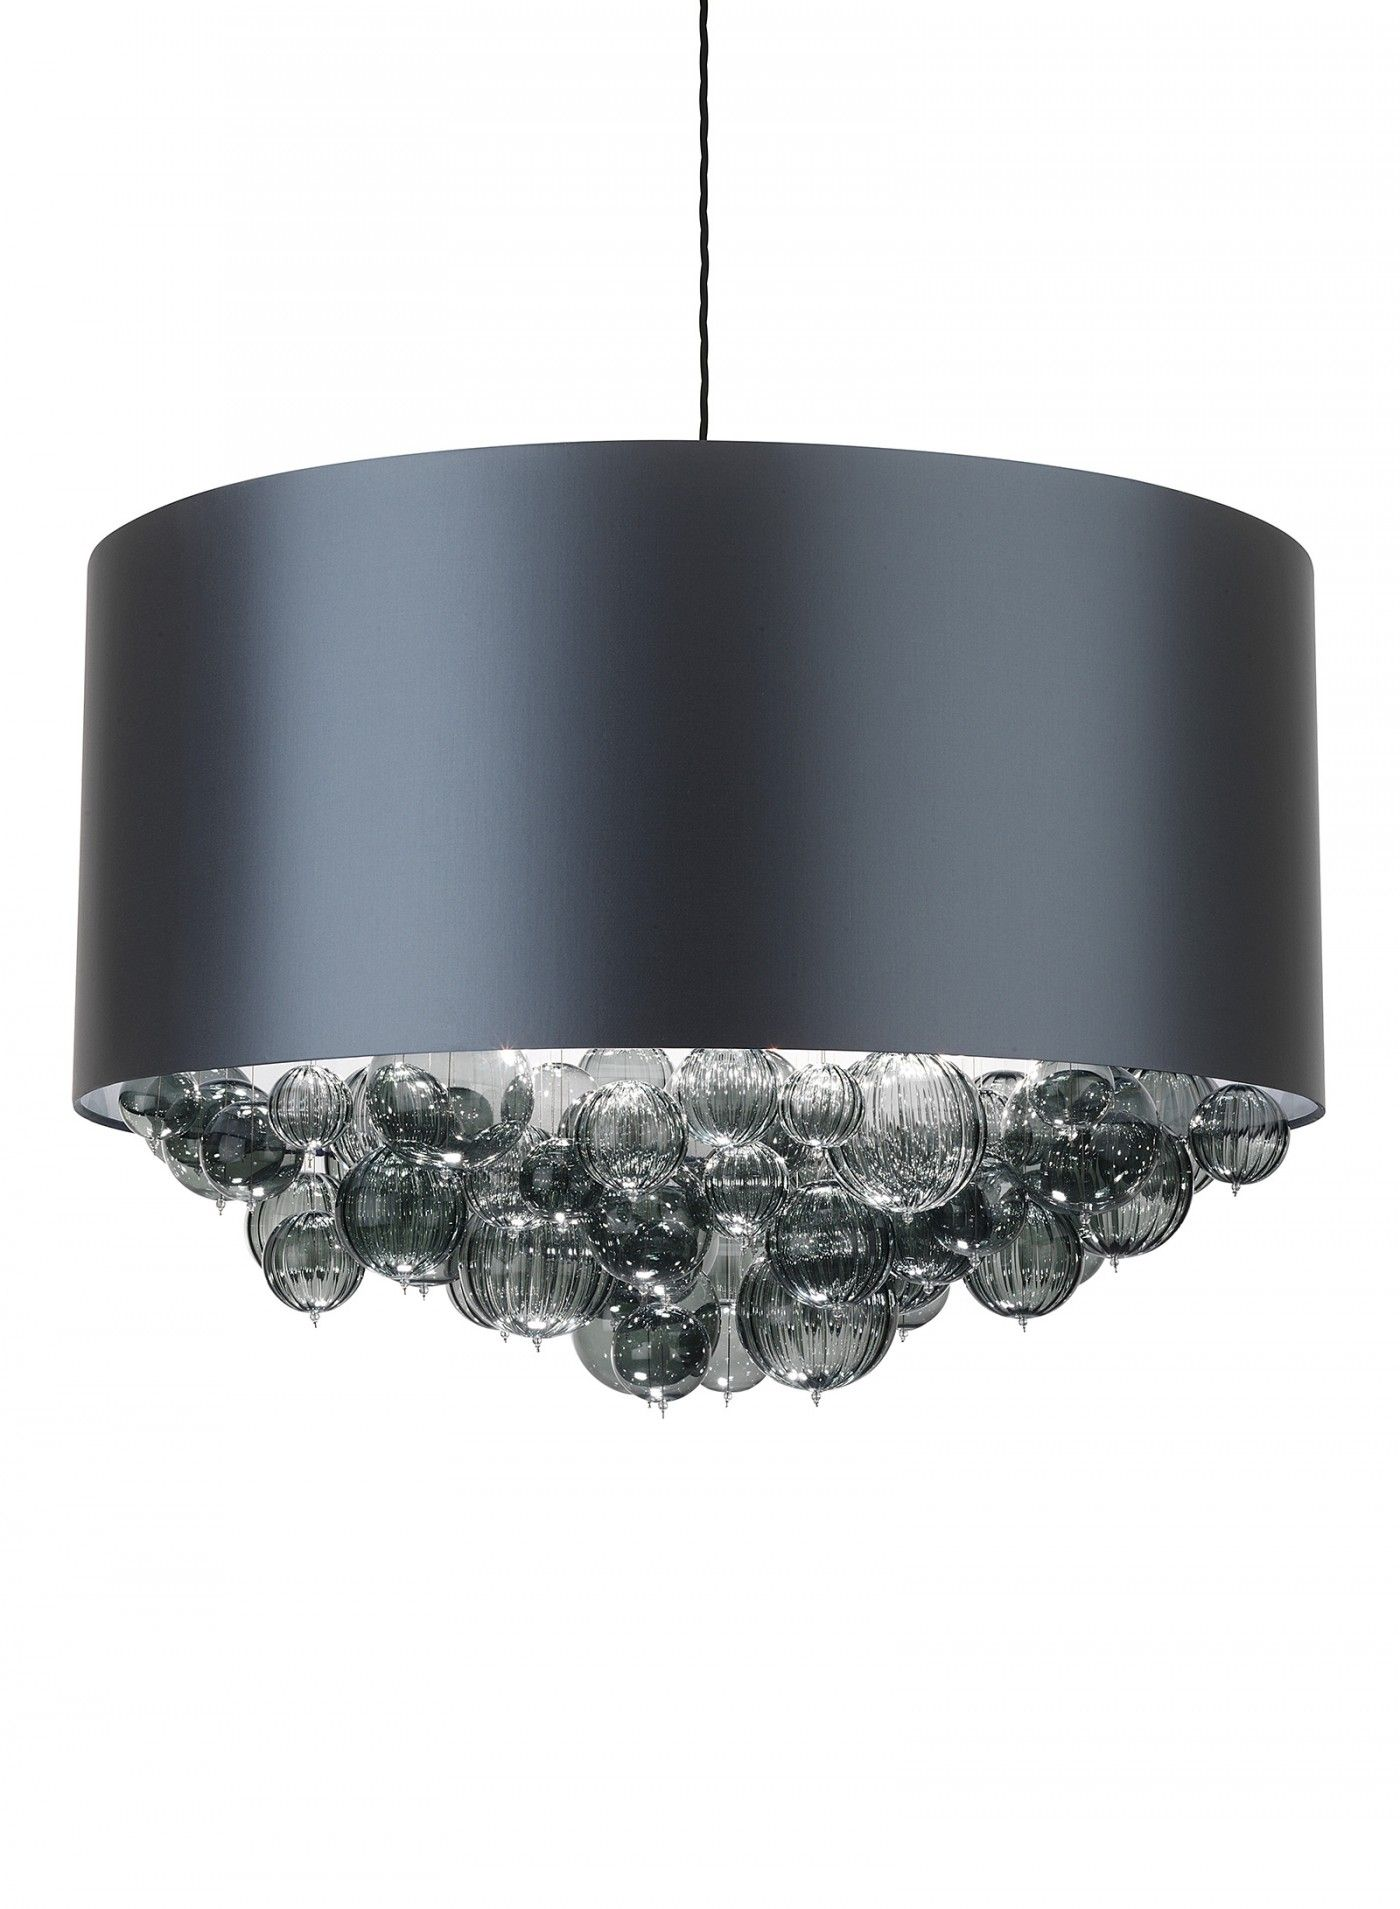 dark teal satin drum pendant with smoke glass bubble chandelier